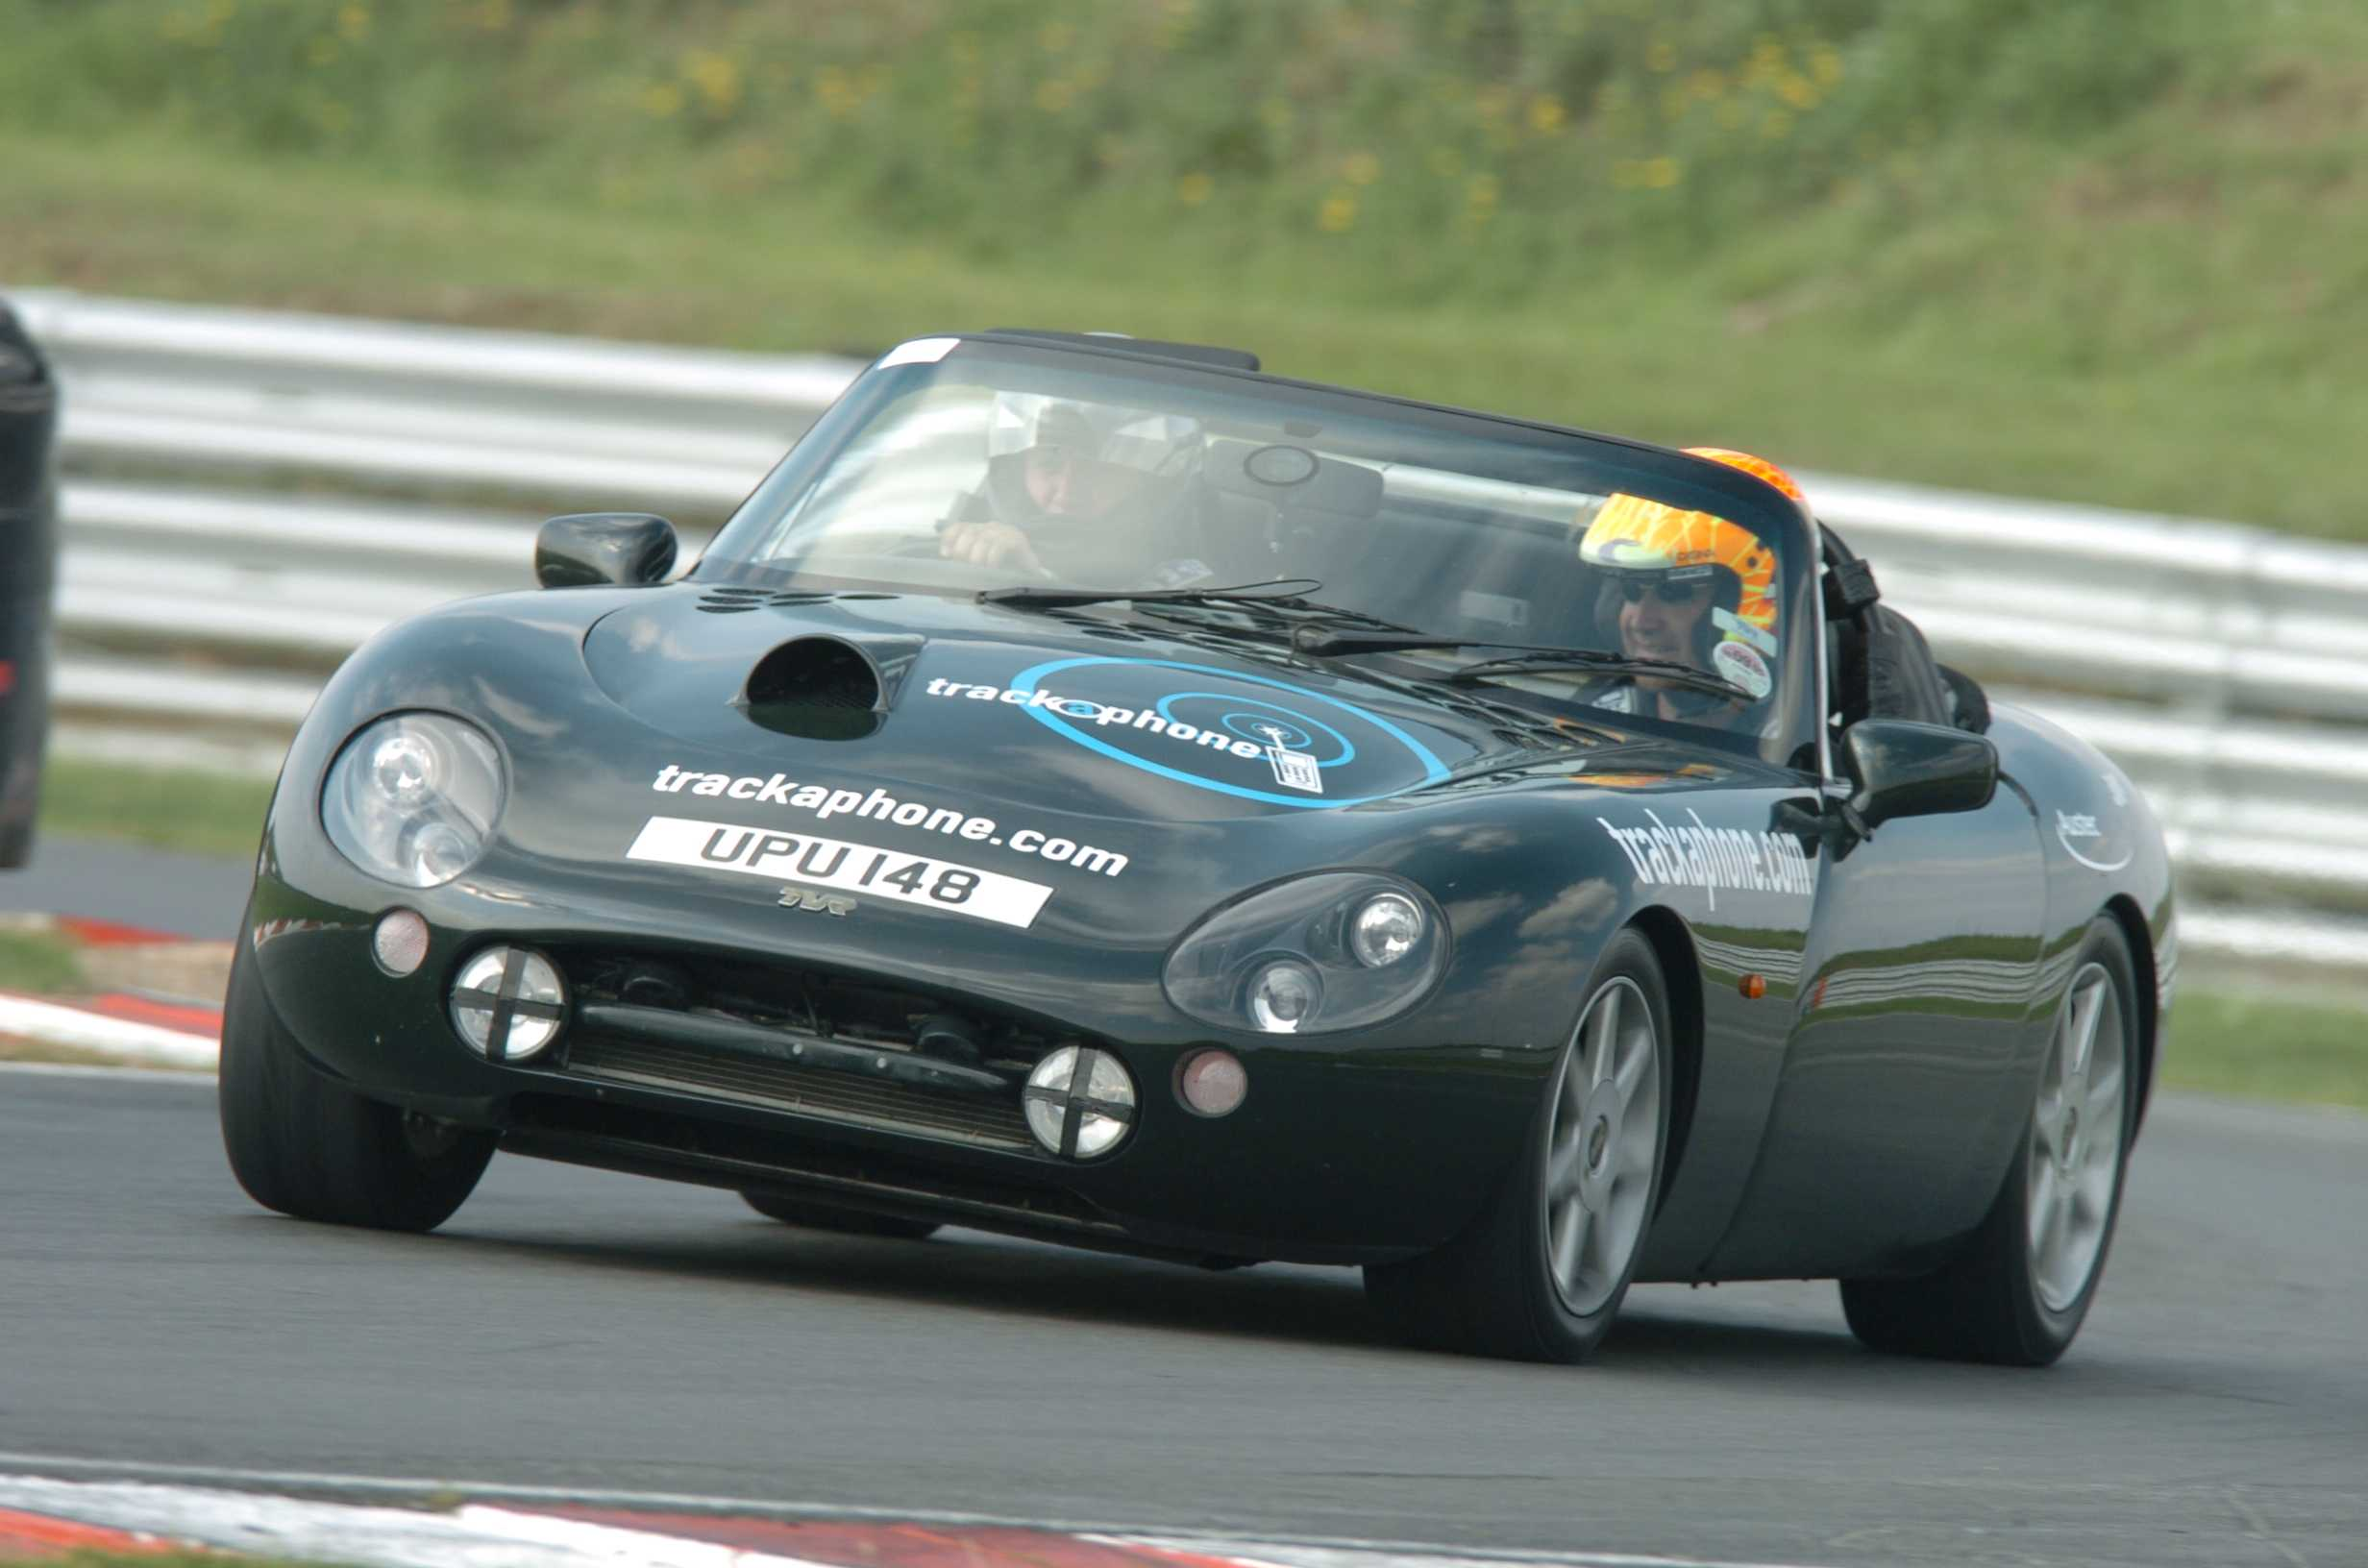 2003 TVR Griffith #11